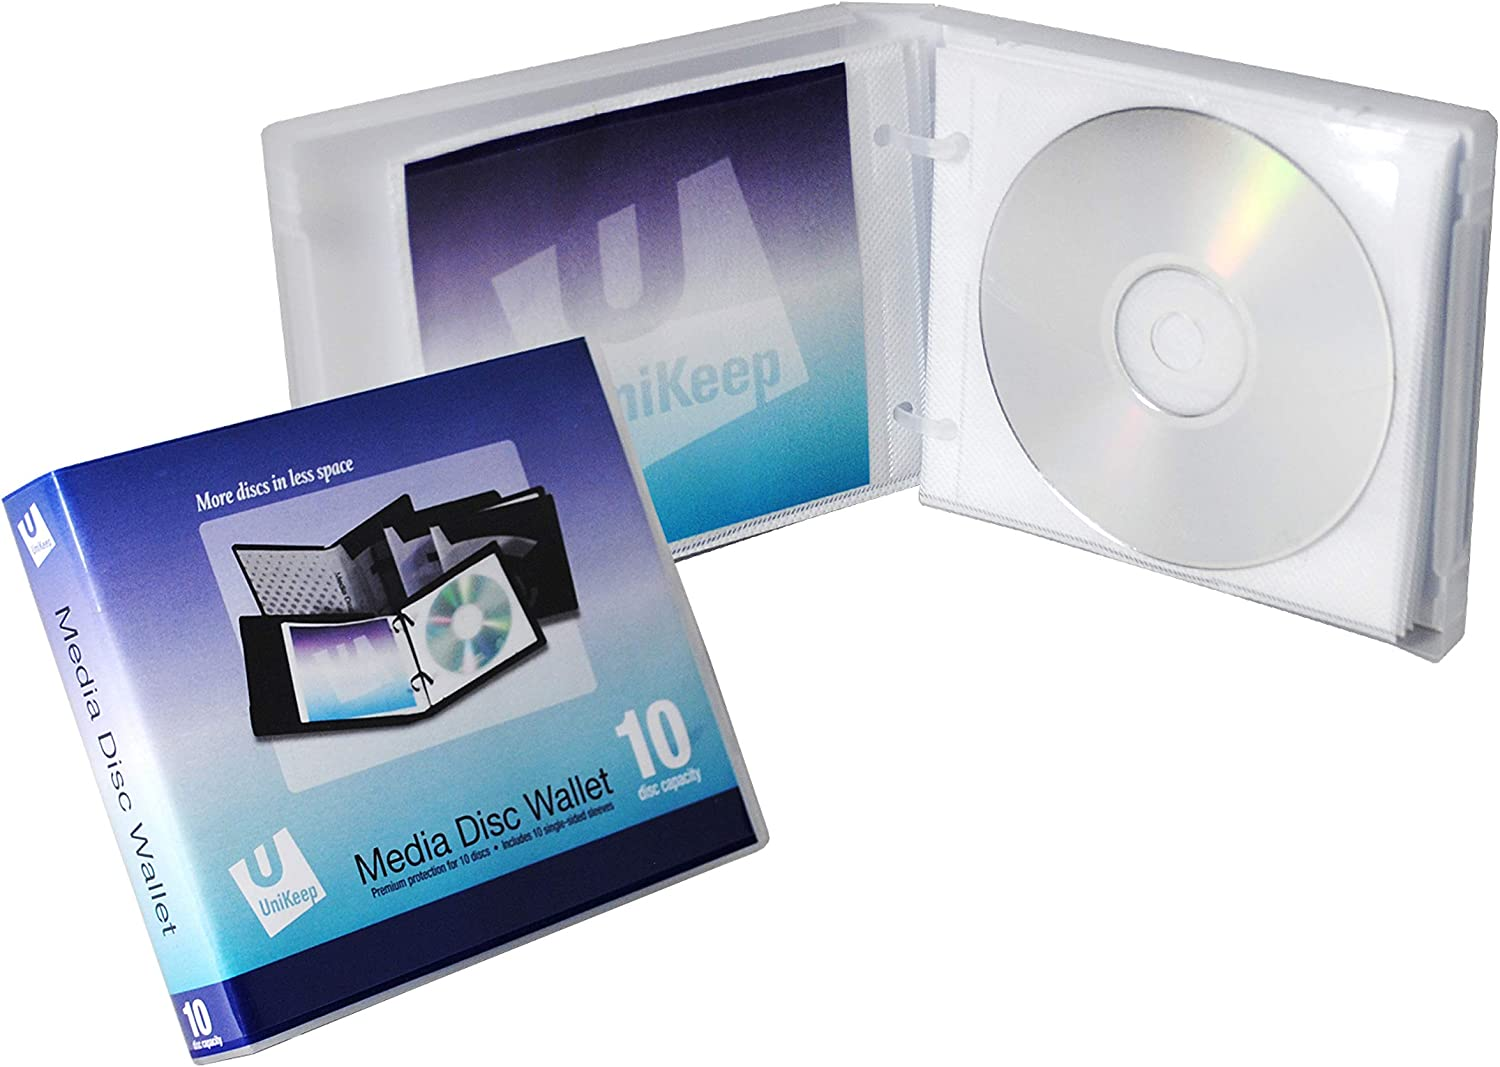 UniKeep Disc 10 CD/DVD Wallet with Pages (6.38